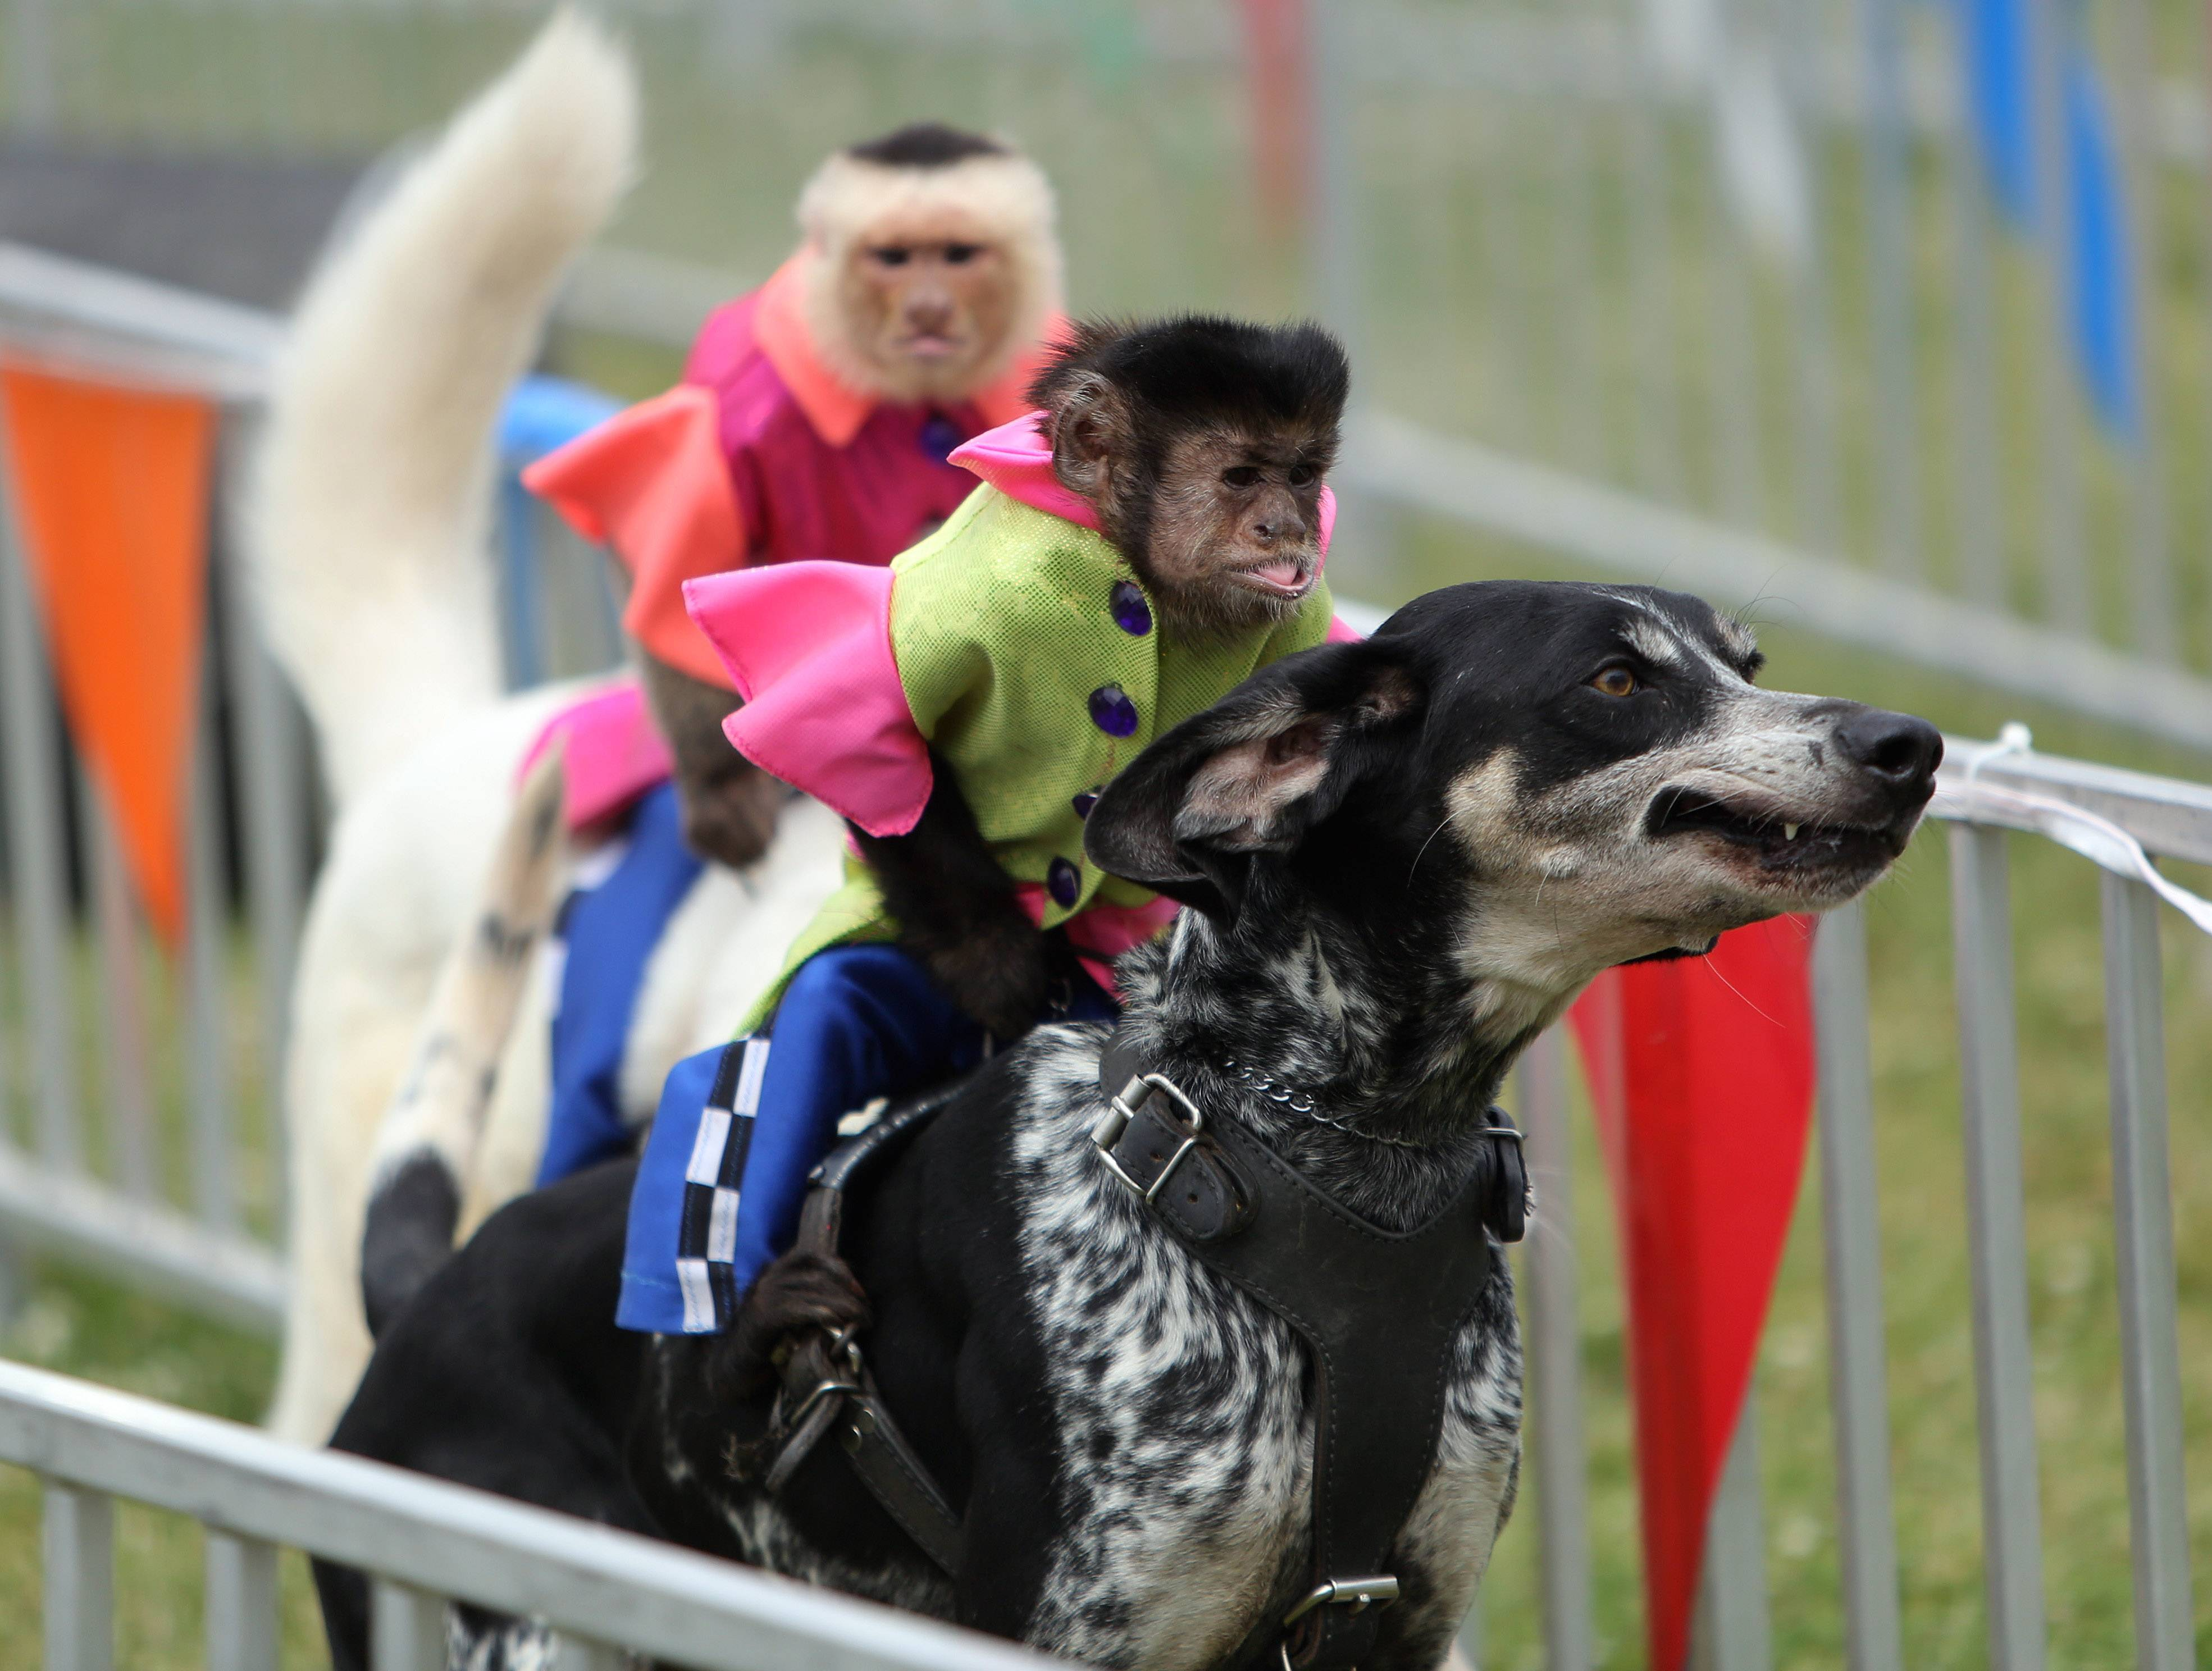 Burt, right, a capuchin monkey, rides Sccoby Blue, as Bobo rides Sasha, during the Banana Derby Friday at the Lake County Fair in Grayslake.